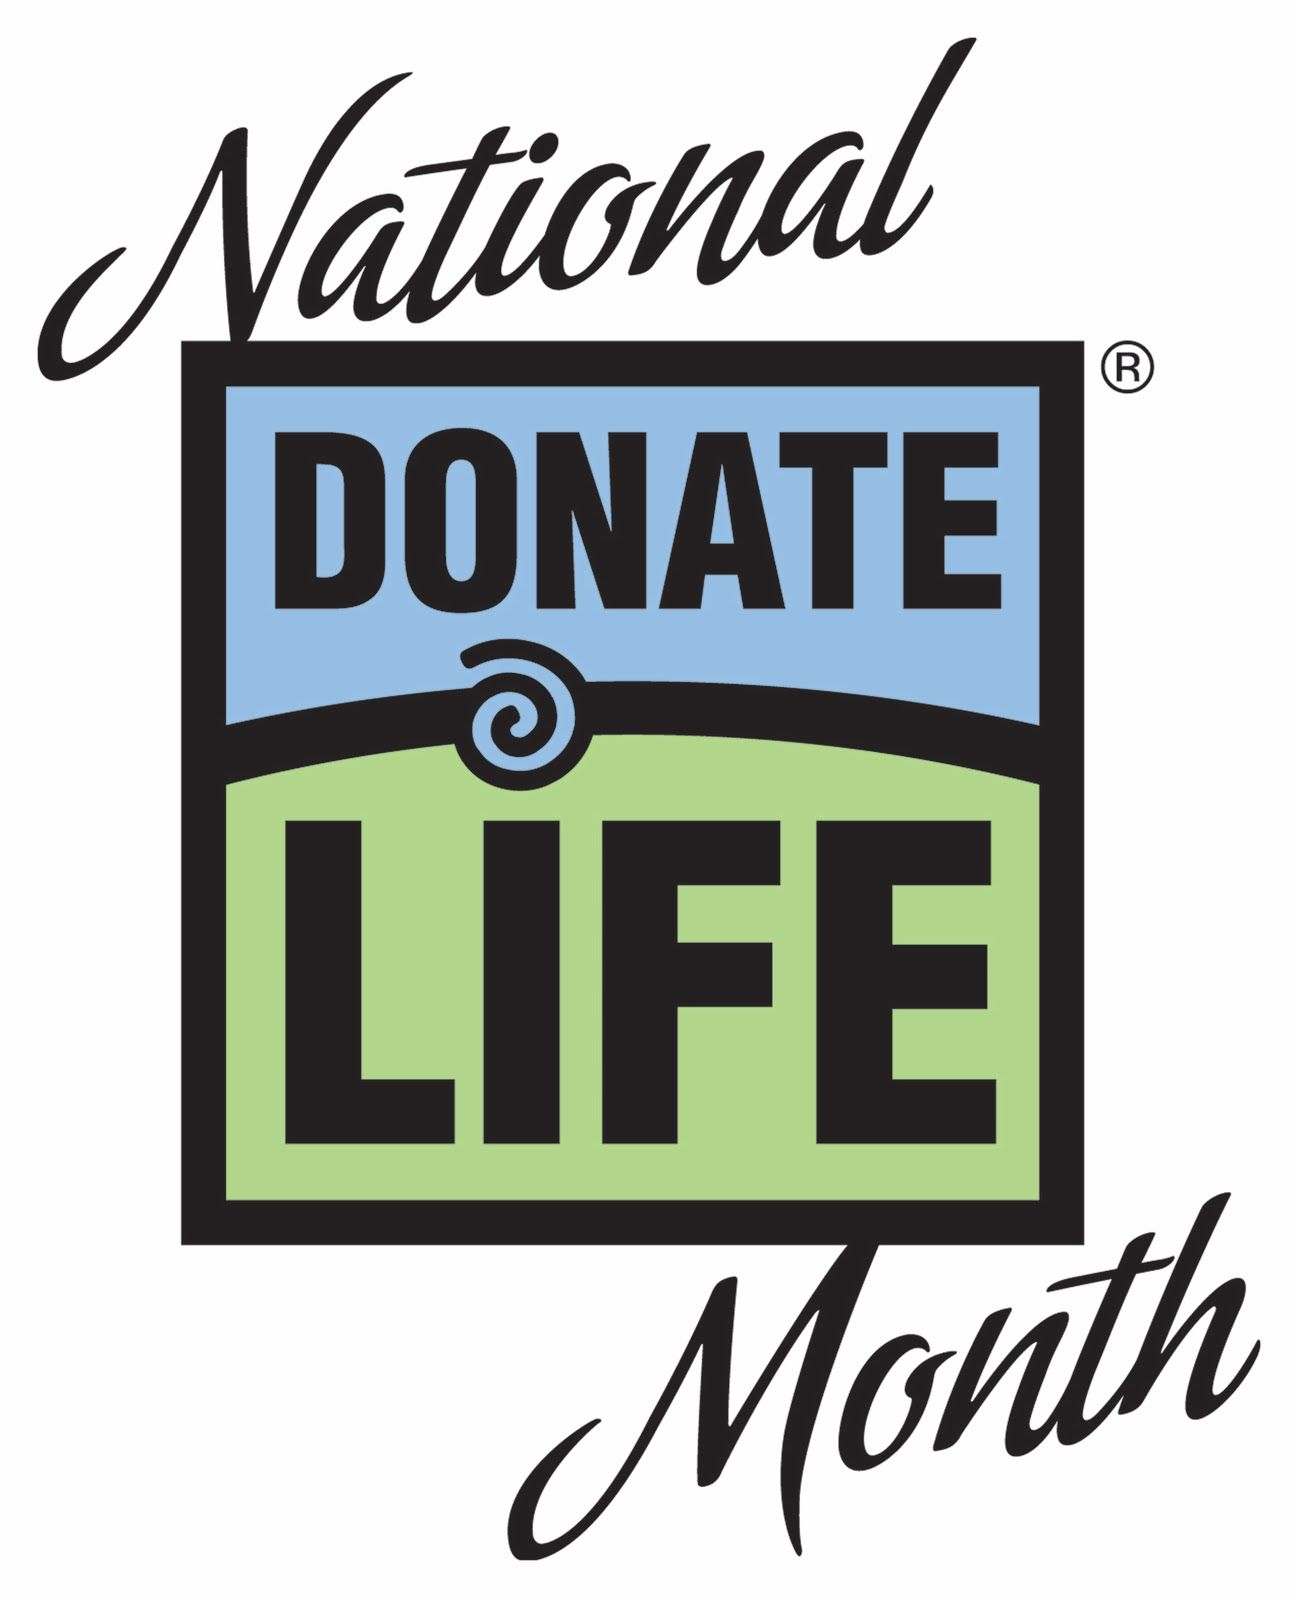 April is Organ Donation Awareness Month! #recycleyourparts #donateLIFE #beahero #save8